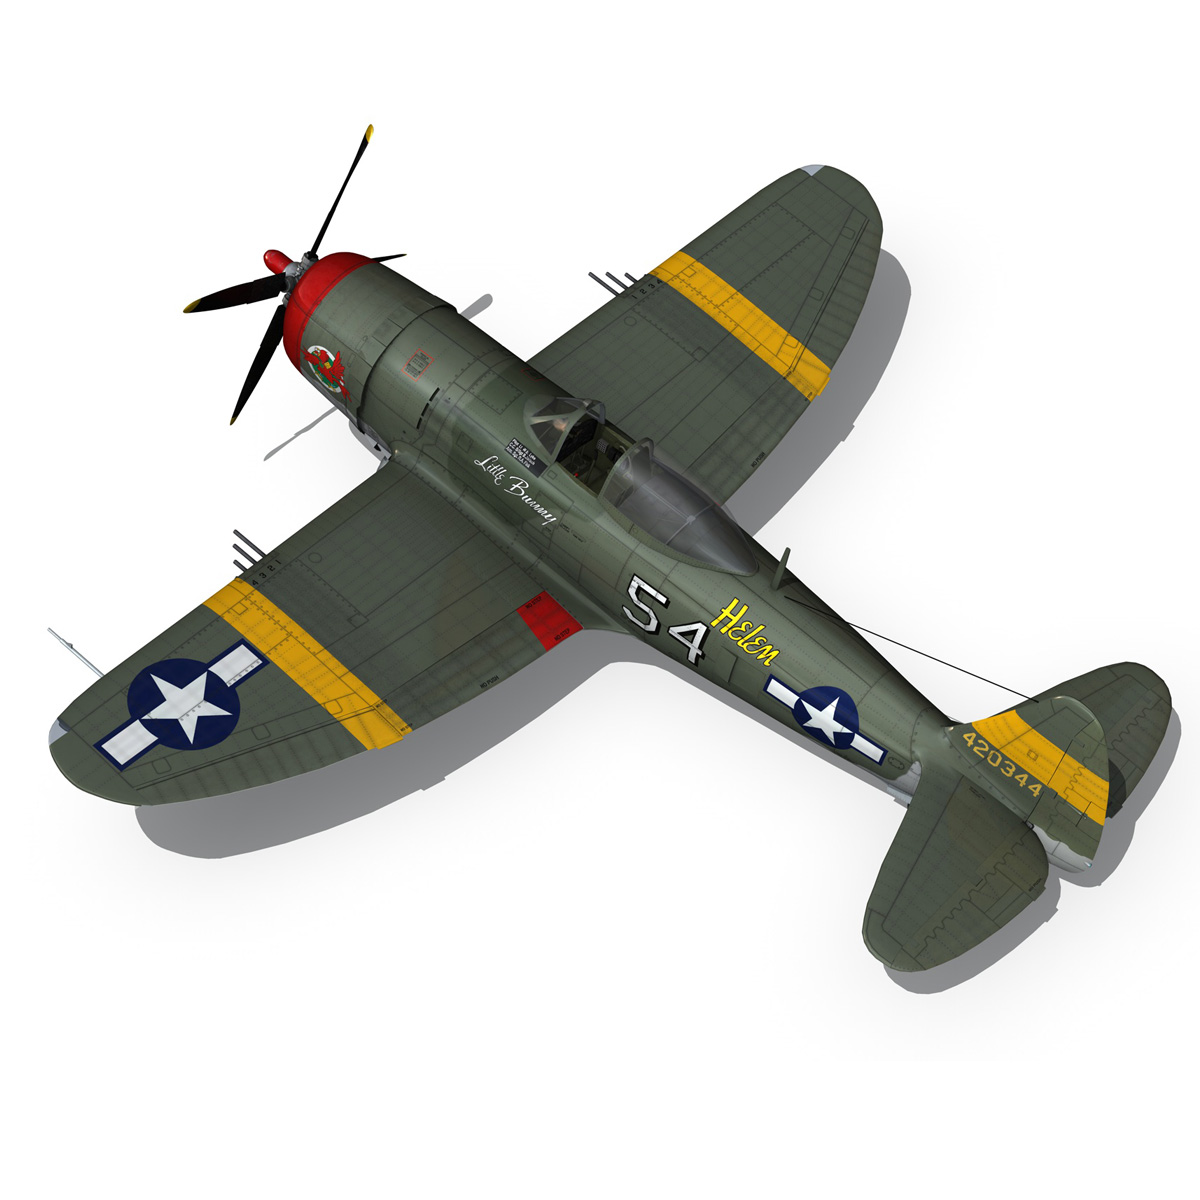 republic p-47d thunderbolt – little bunny 3d model fbx c4d lwo obj 274230